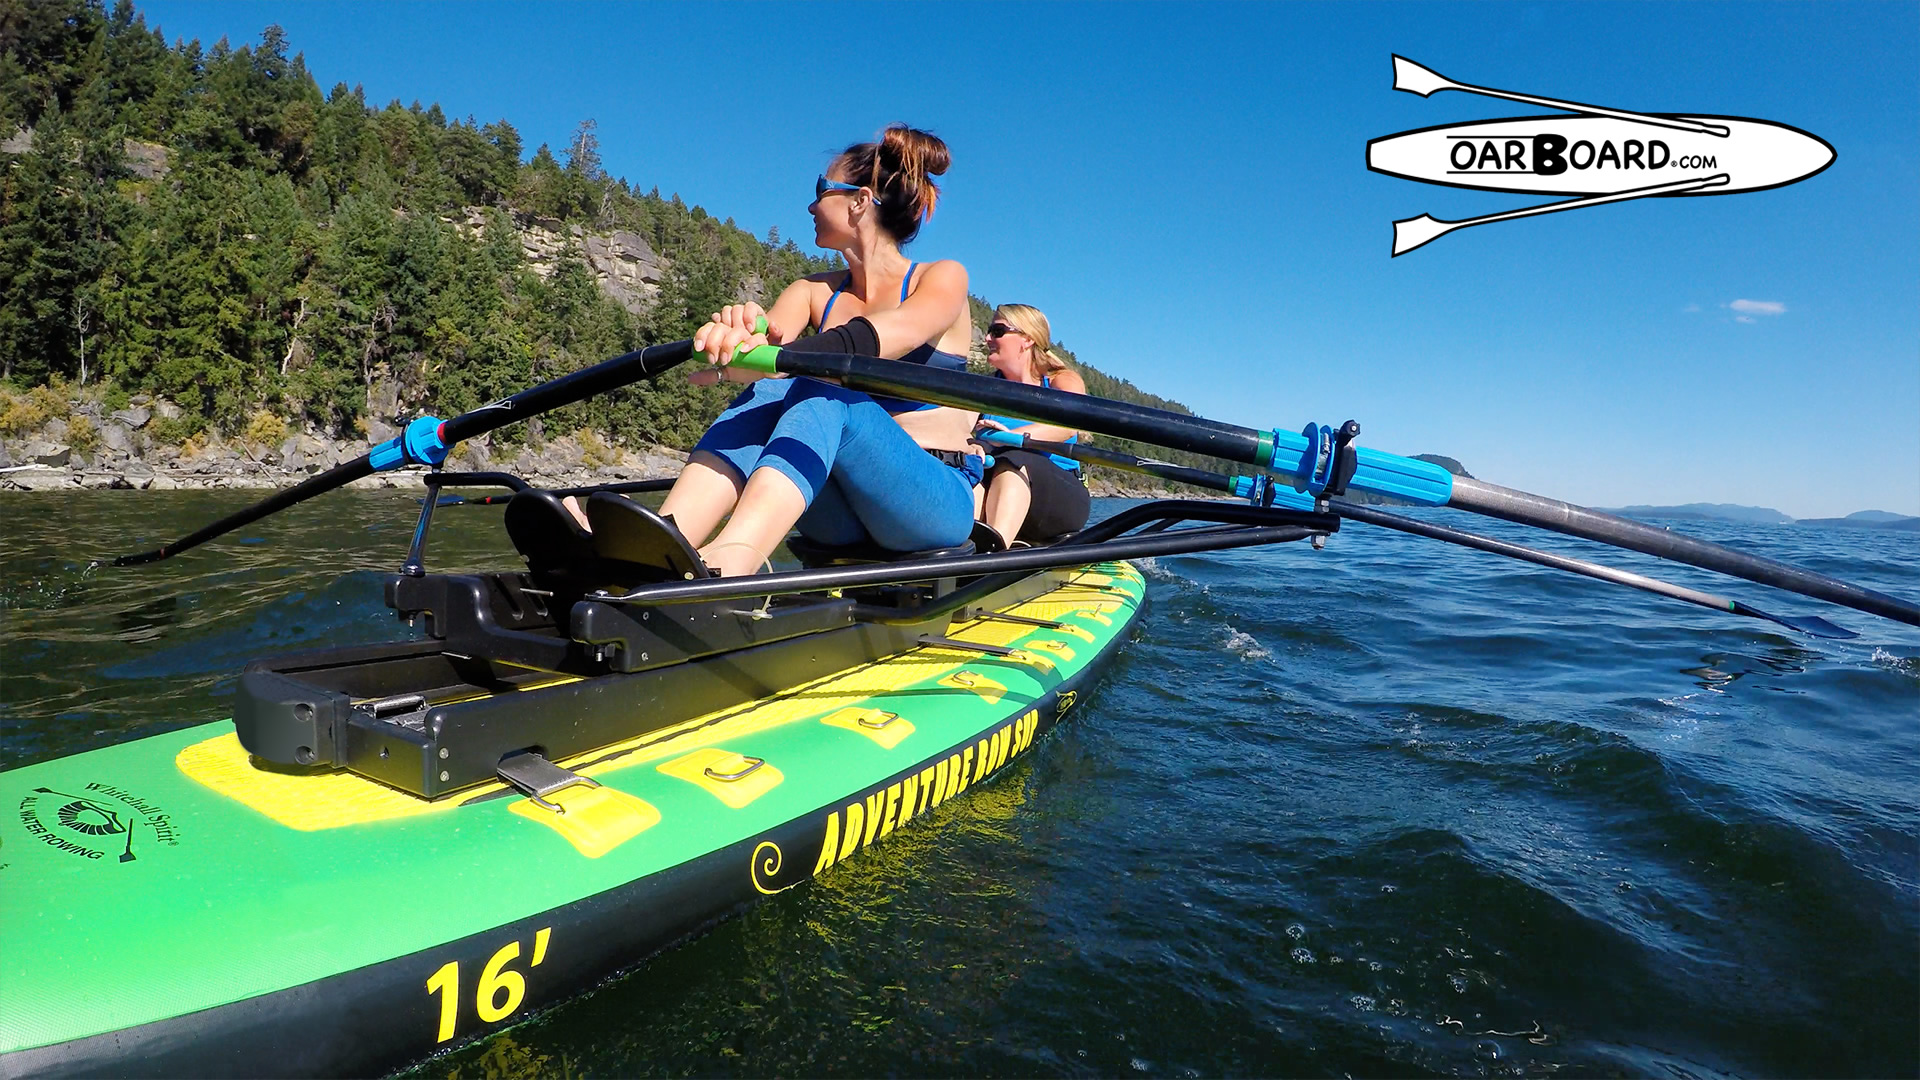 Oar-Board-Adventure-Row-SUP-16-Combo-from-Whitehall-Rowing-and-Sail